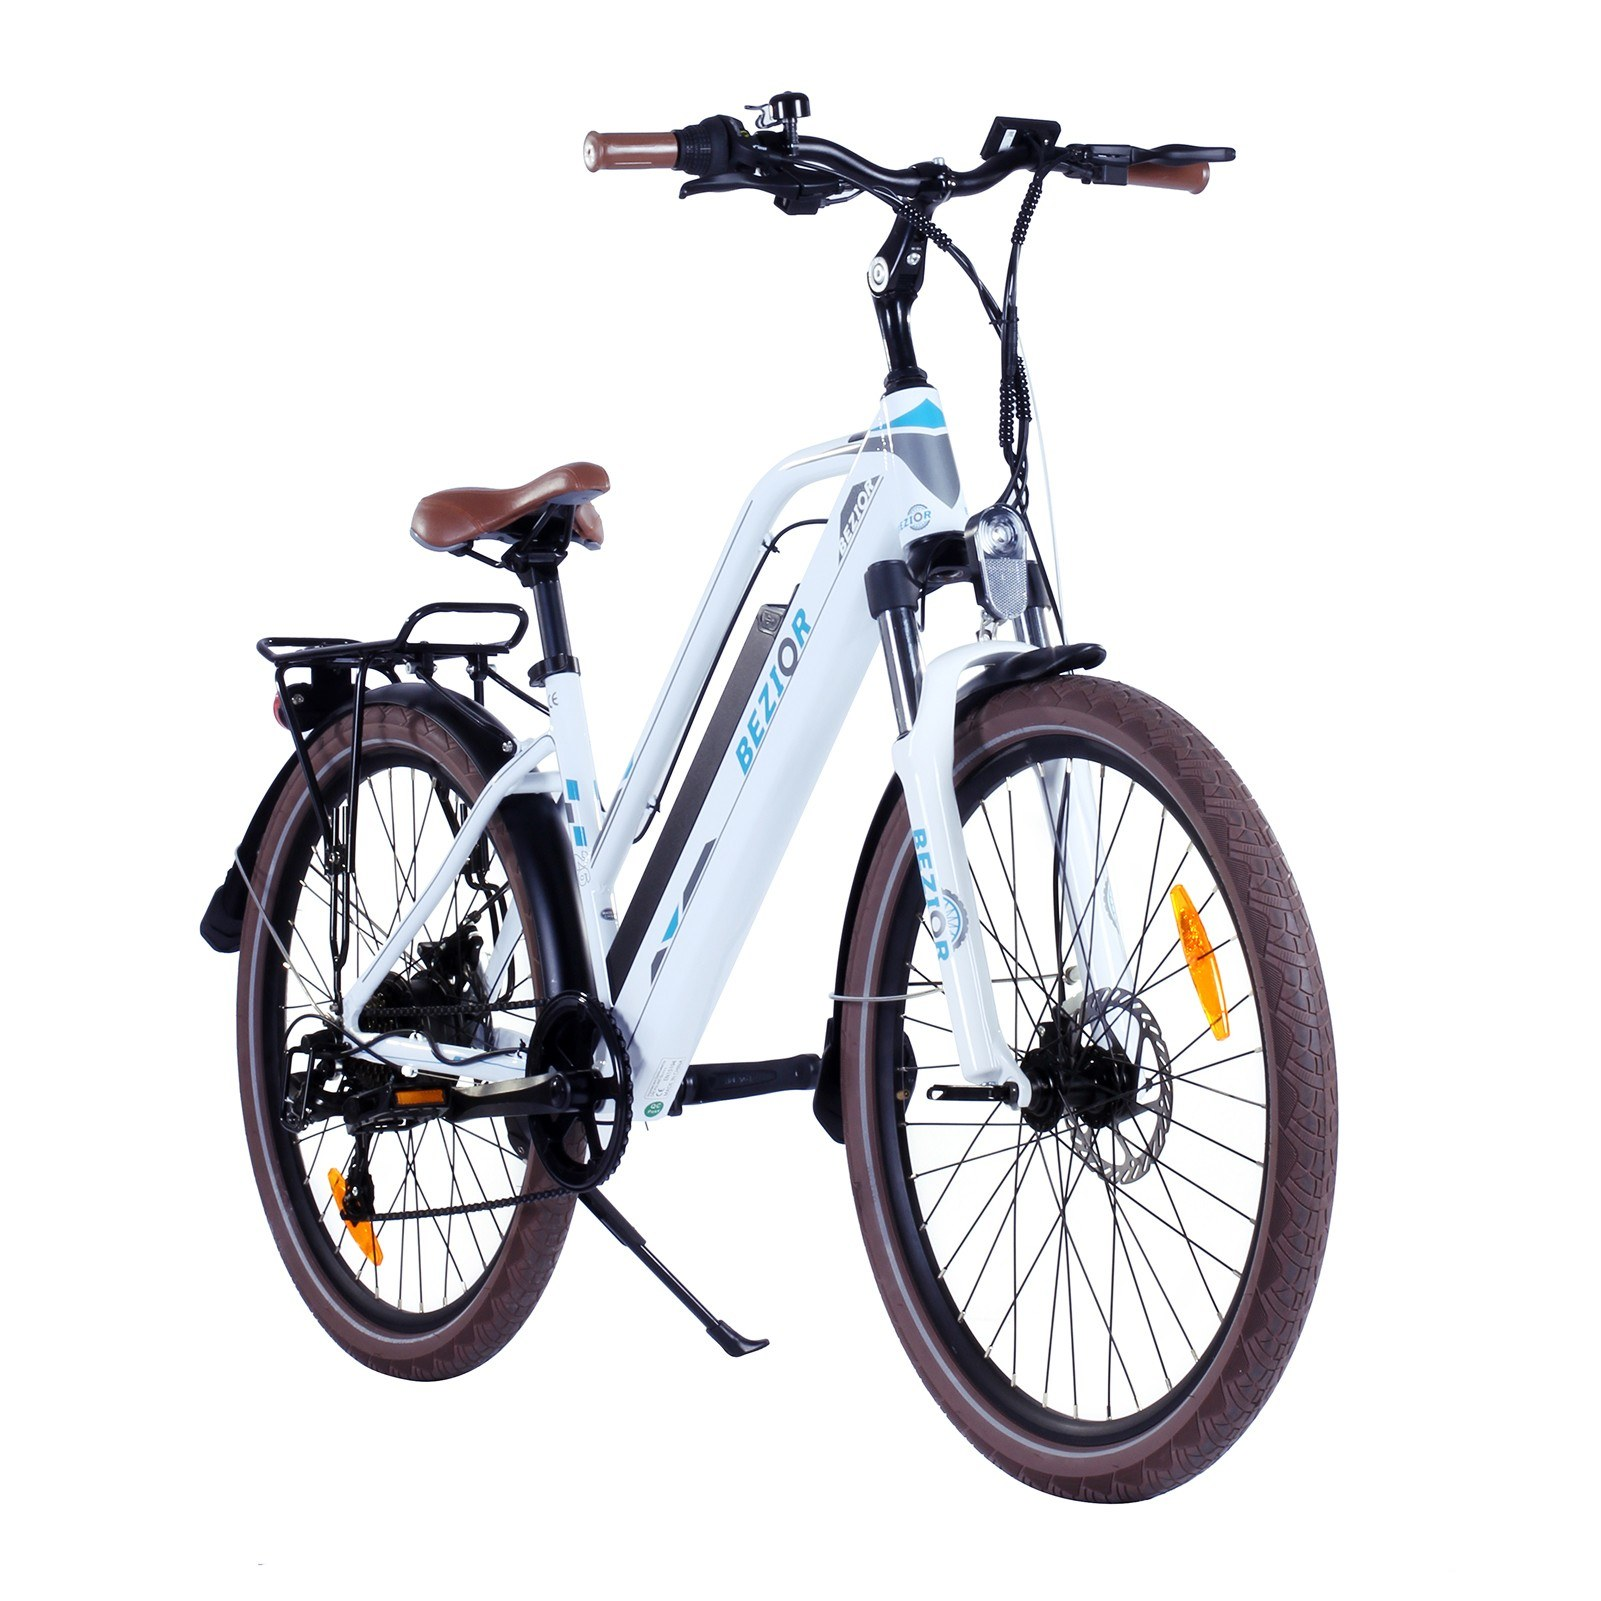 cafago.com - 37% OFF BEZIOR M2 26 Inch 250W Power Assist Electric Bicycle,free shipping+$1106.29